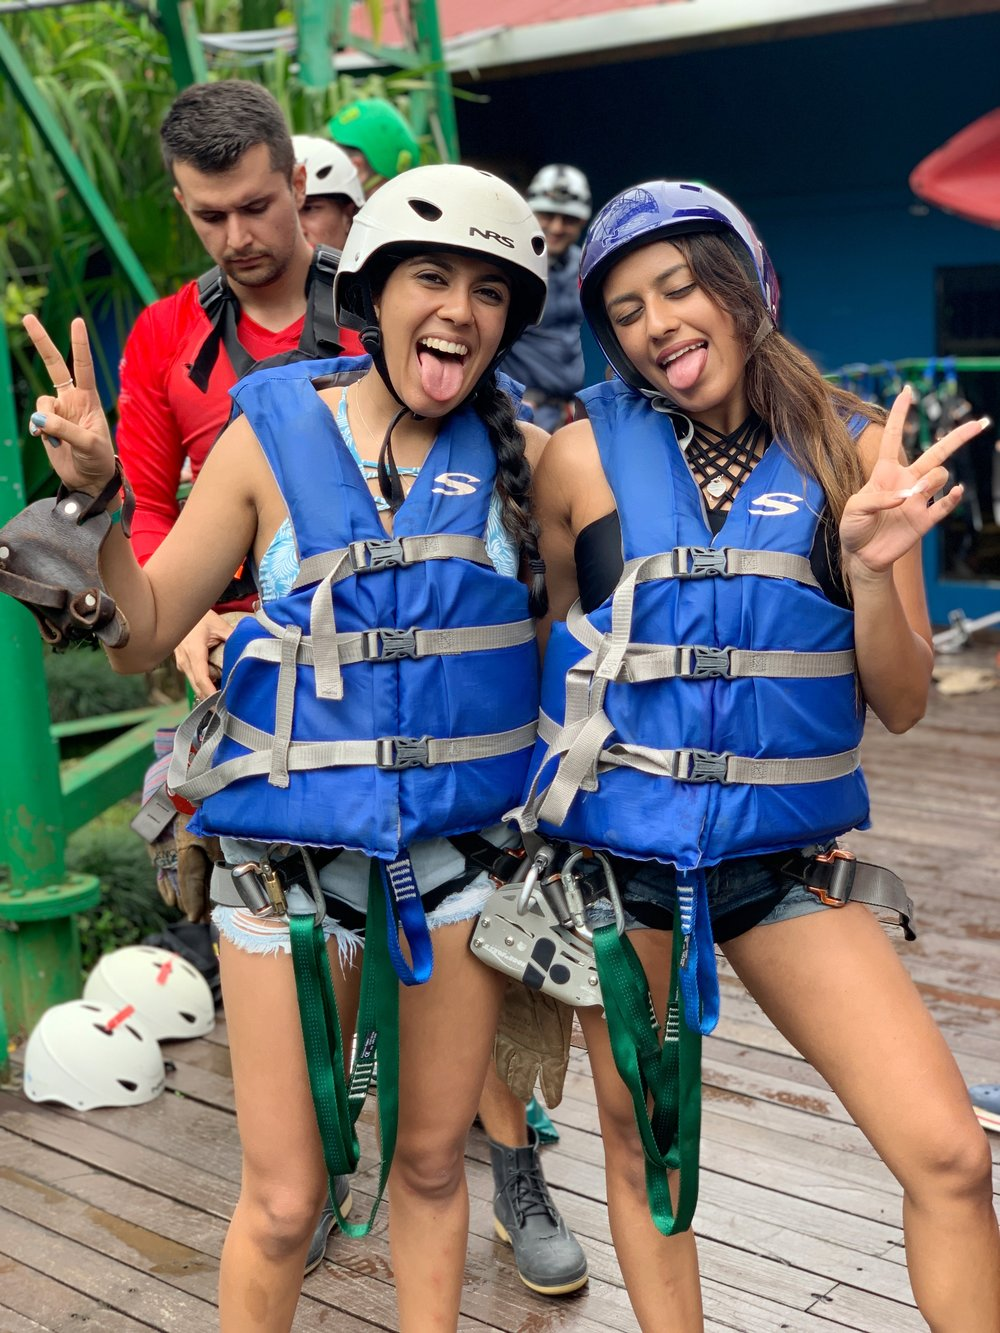 Zip lining and river drifting gear!